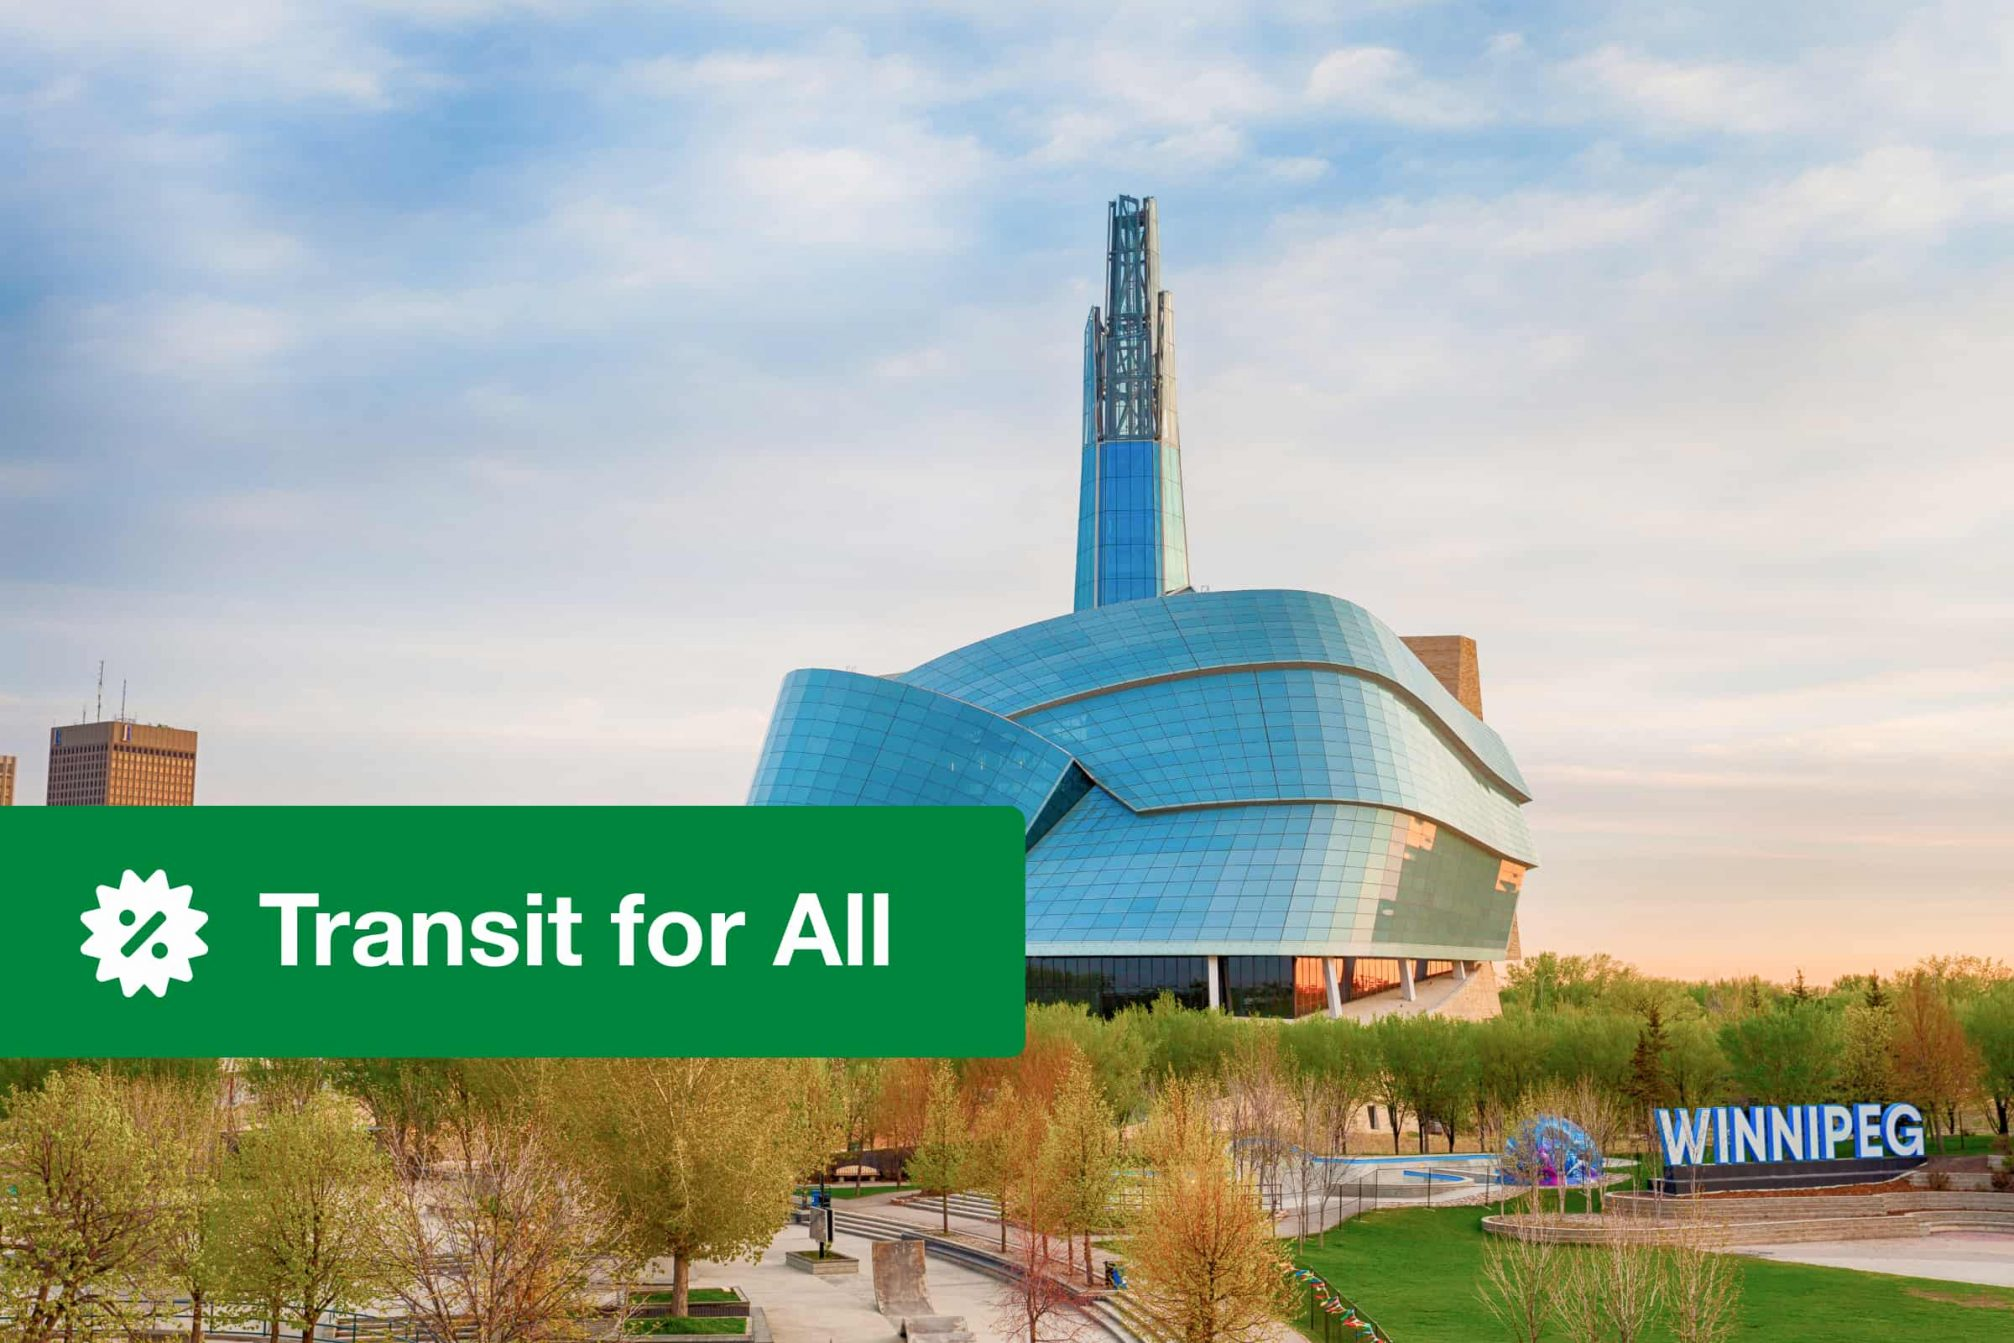 Low Income Transit Passes for Manitoba